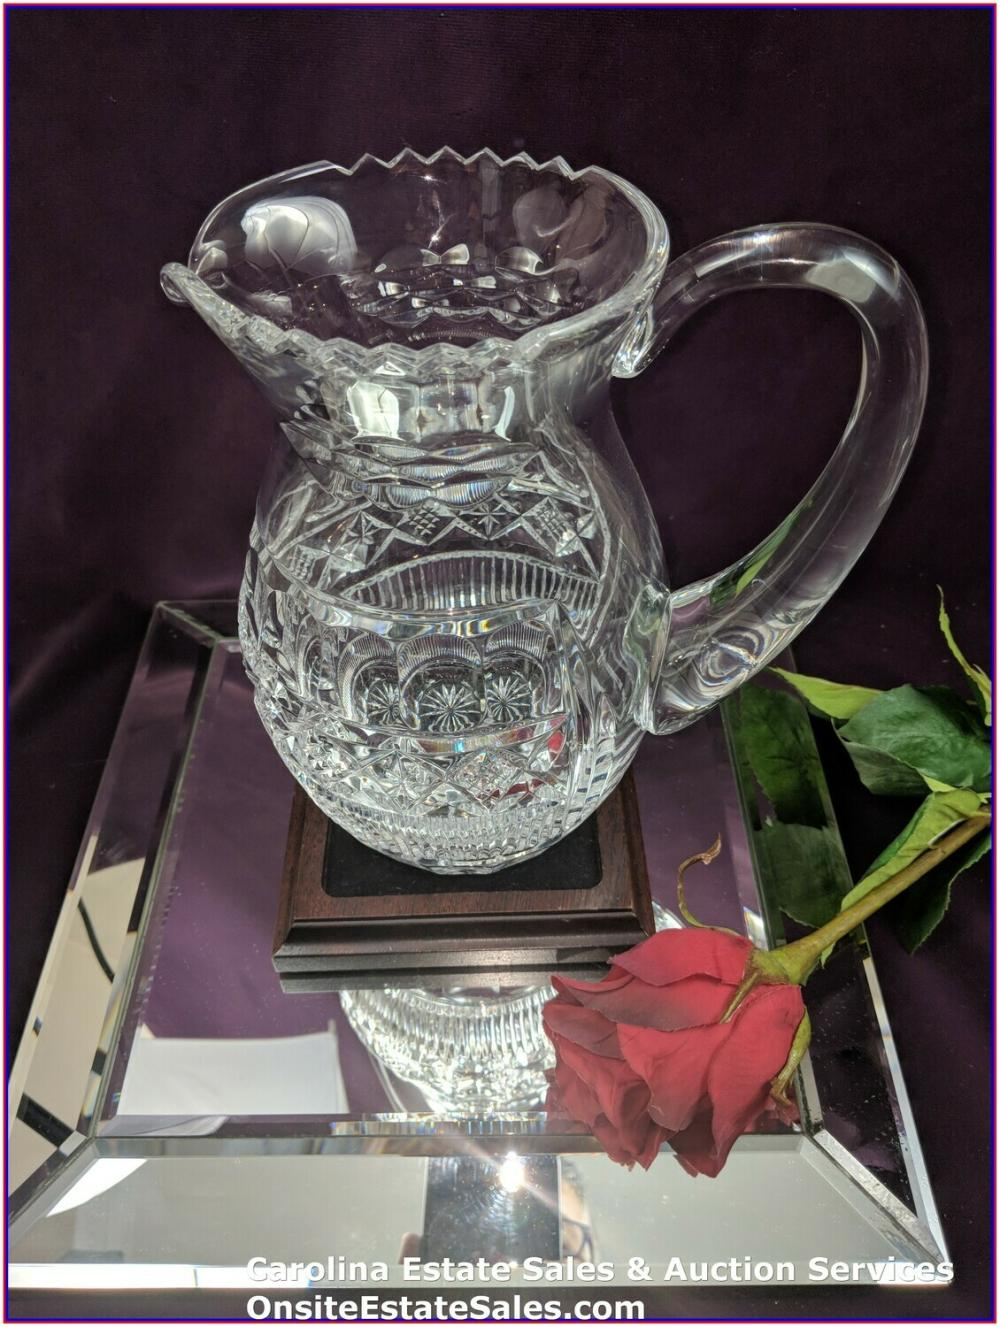 """Waterford Crystal Pitcher """"Rare"""" Signed Museum Collection #22/100 by Jim O'Leary 1994"""